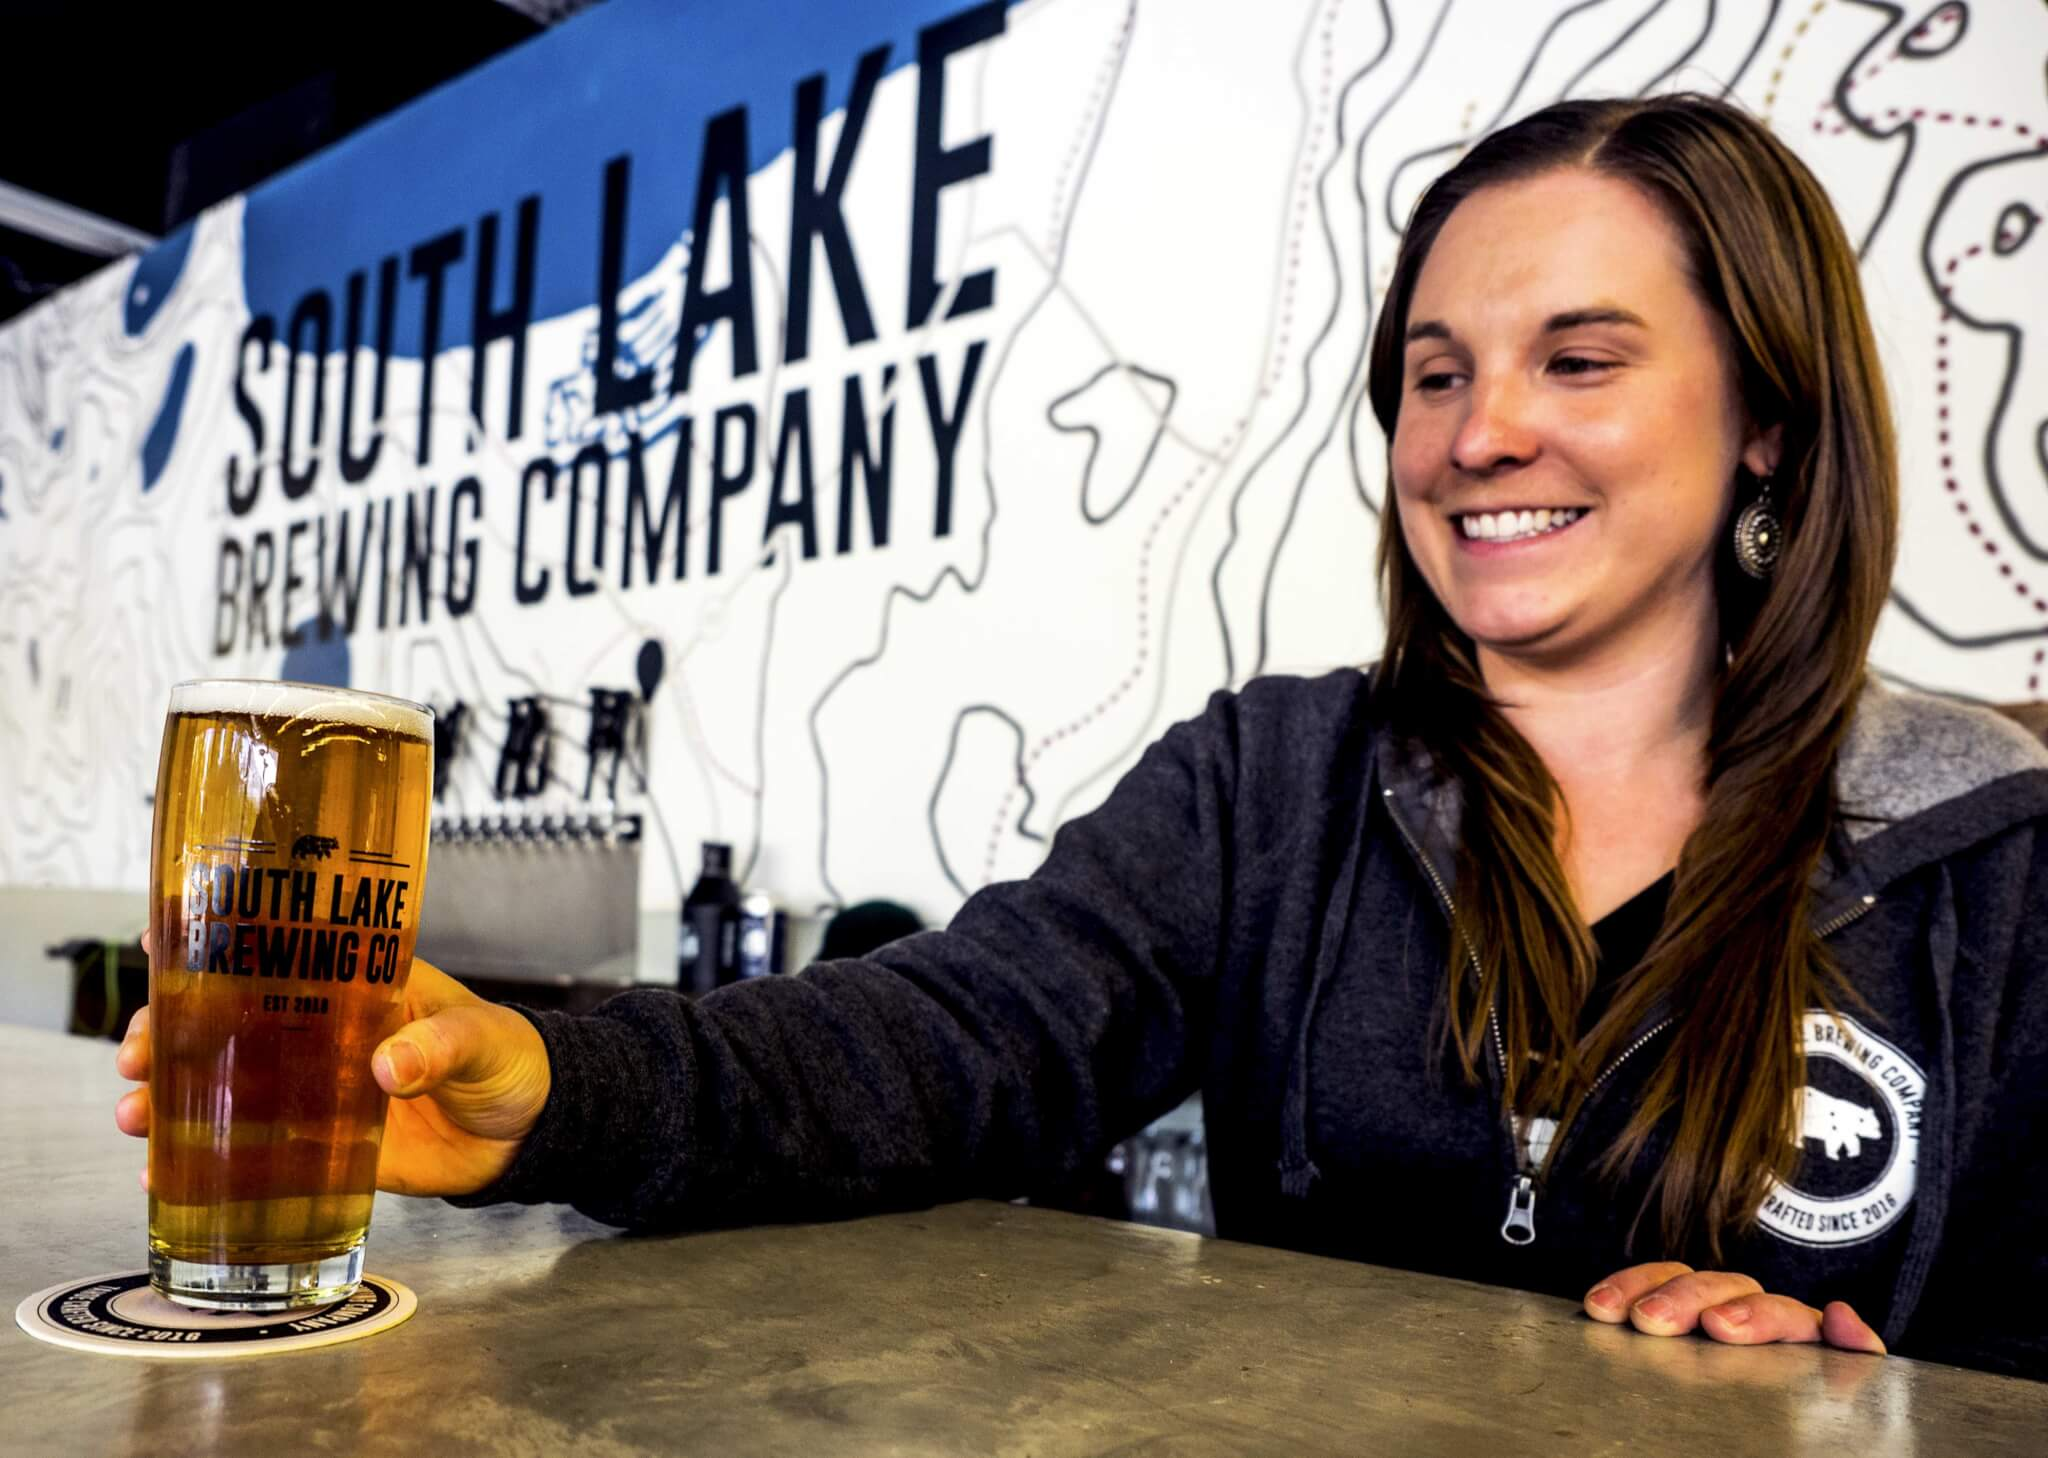 South Lake Brewing South Lake Tahoe Nicole co-owner